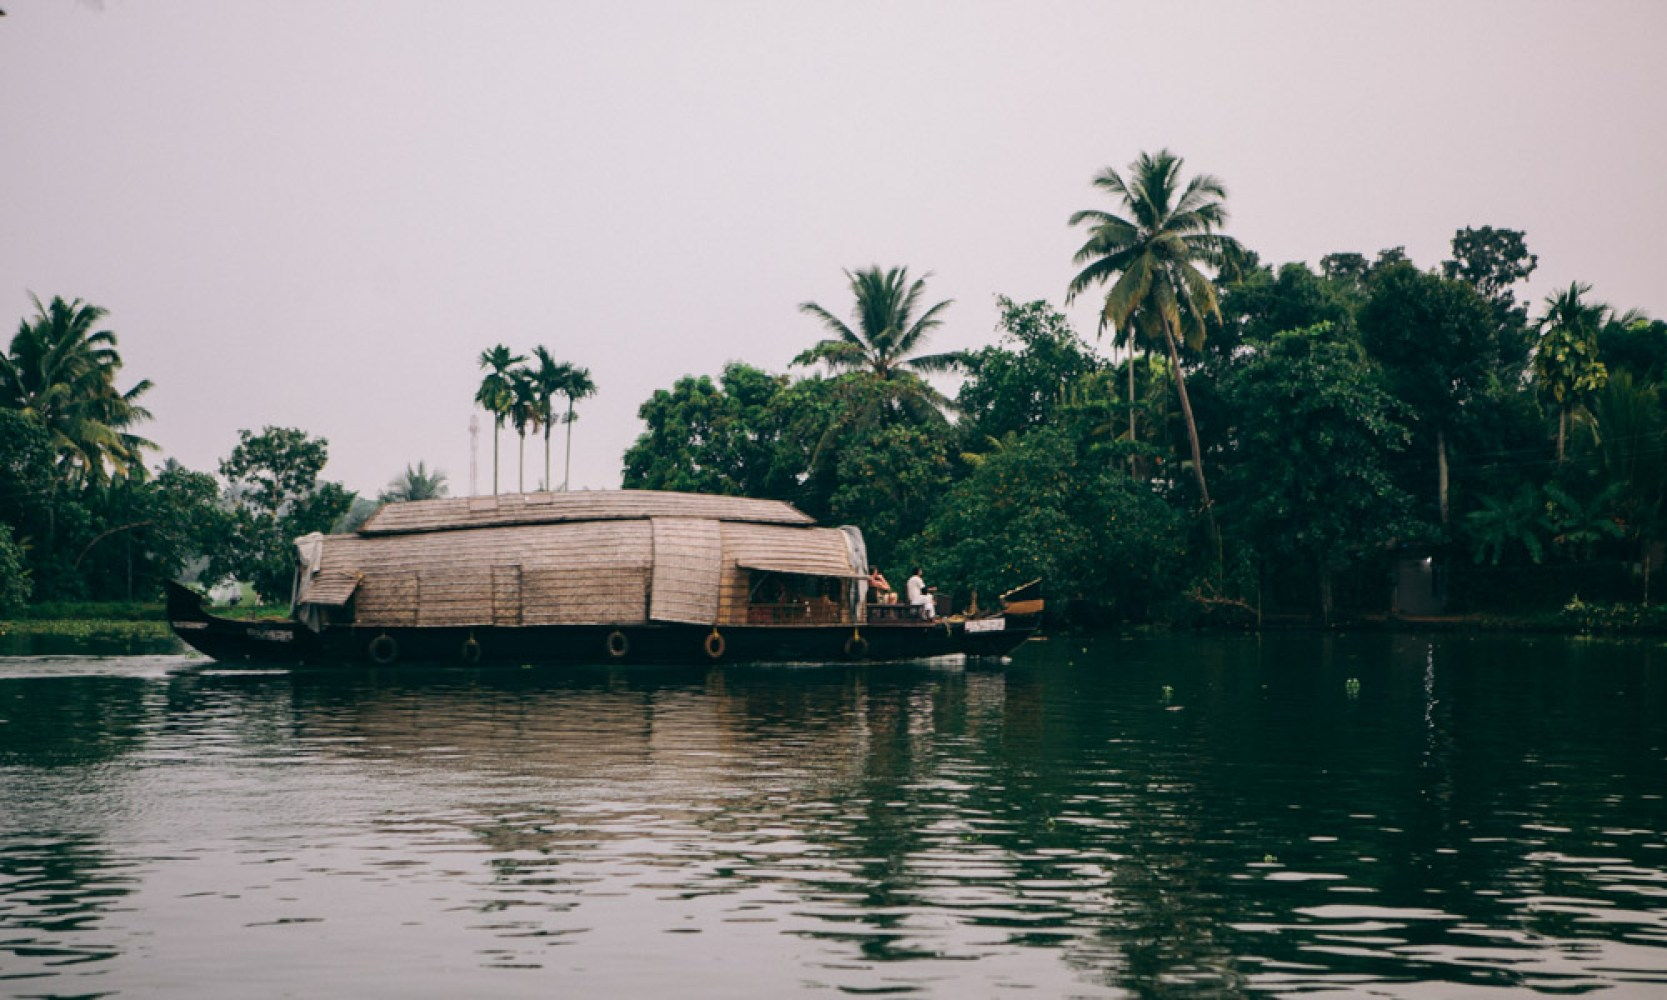 kerala essay Kerala is famous for its backwaters, which are a network of canal, rivers and deltas that drain into the arabian sea the major portion of this backwater is navigable and it connects the villages lying along and it is also used for transportation of goods and people.